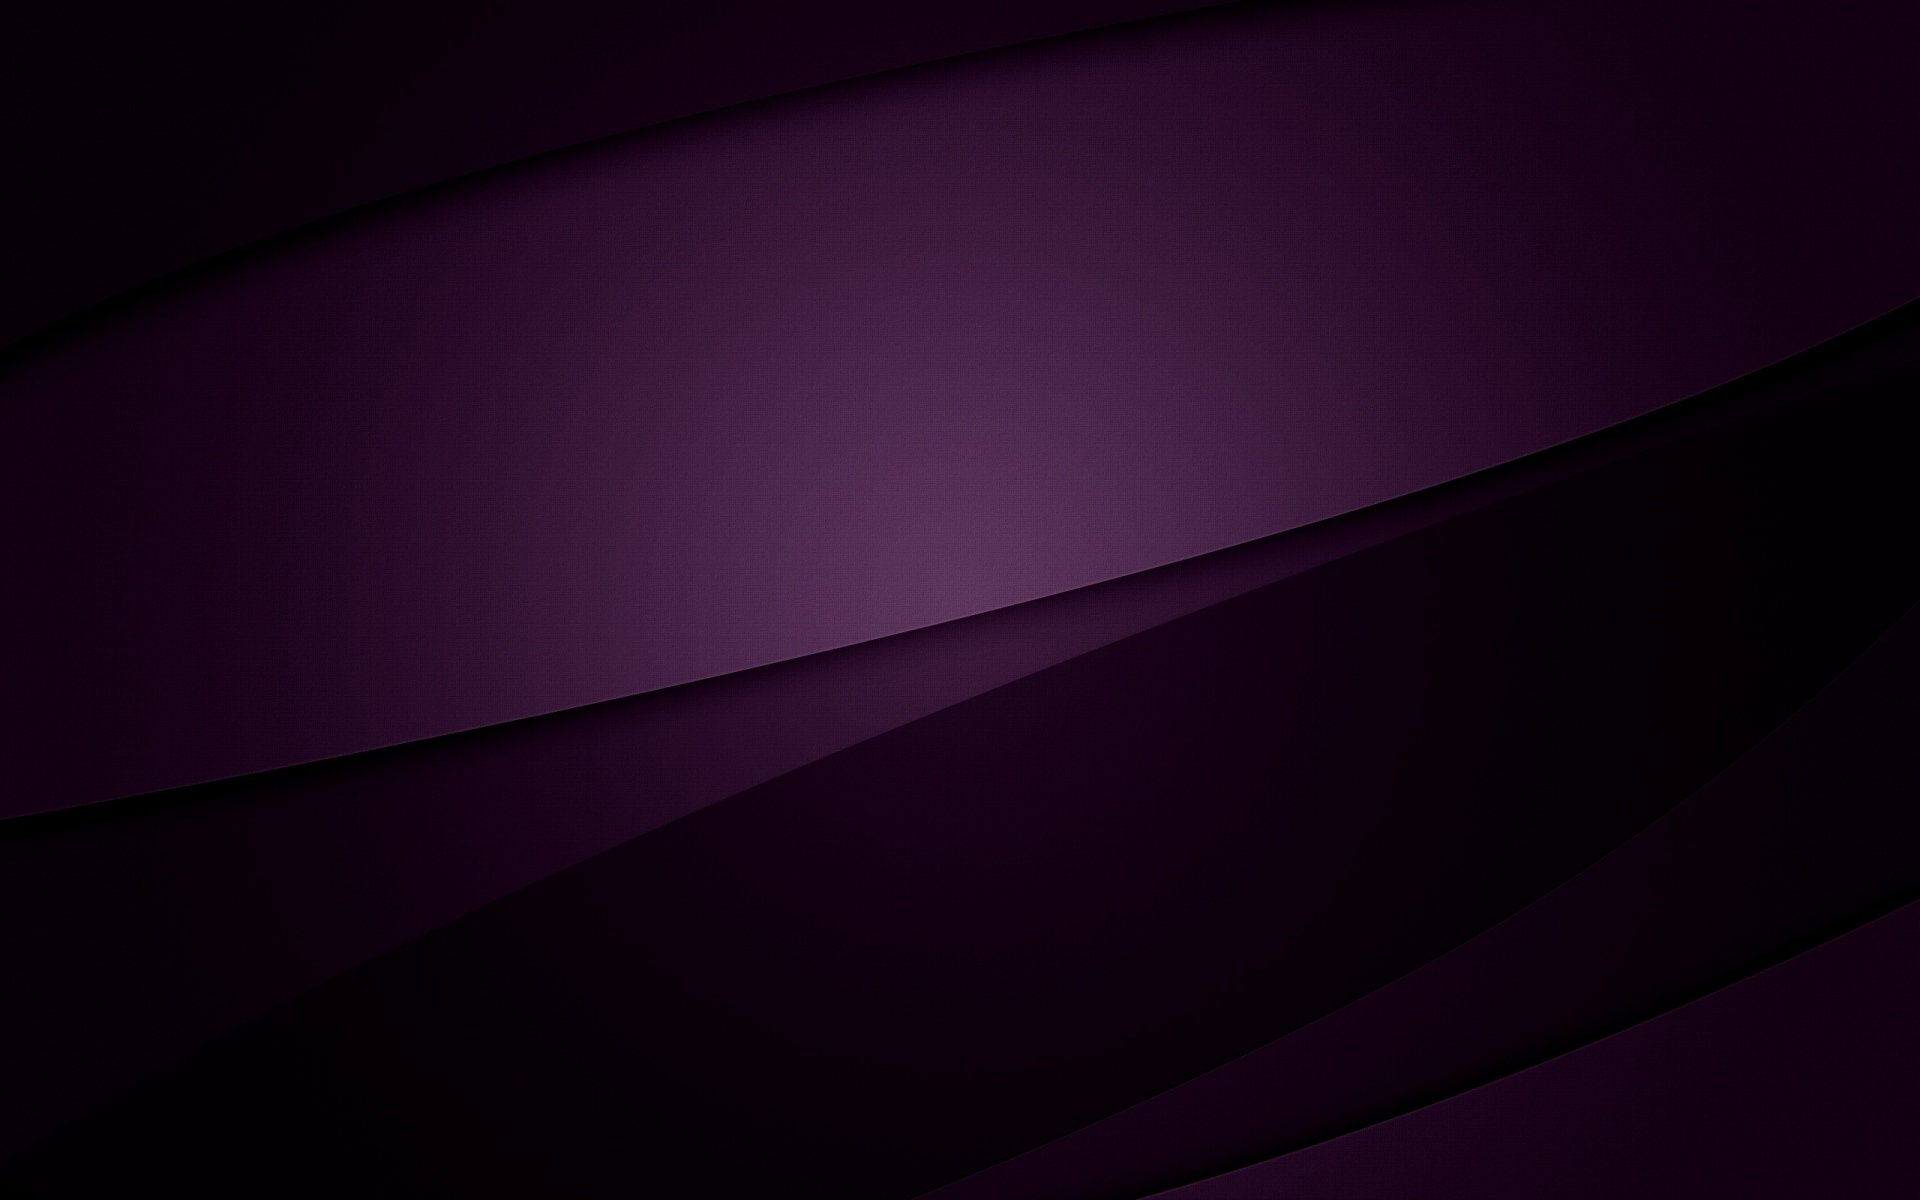 Download hd 1920x1200 Purple Pattern desktop background ID:144883 for free